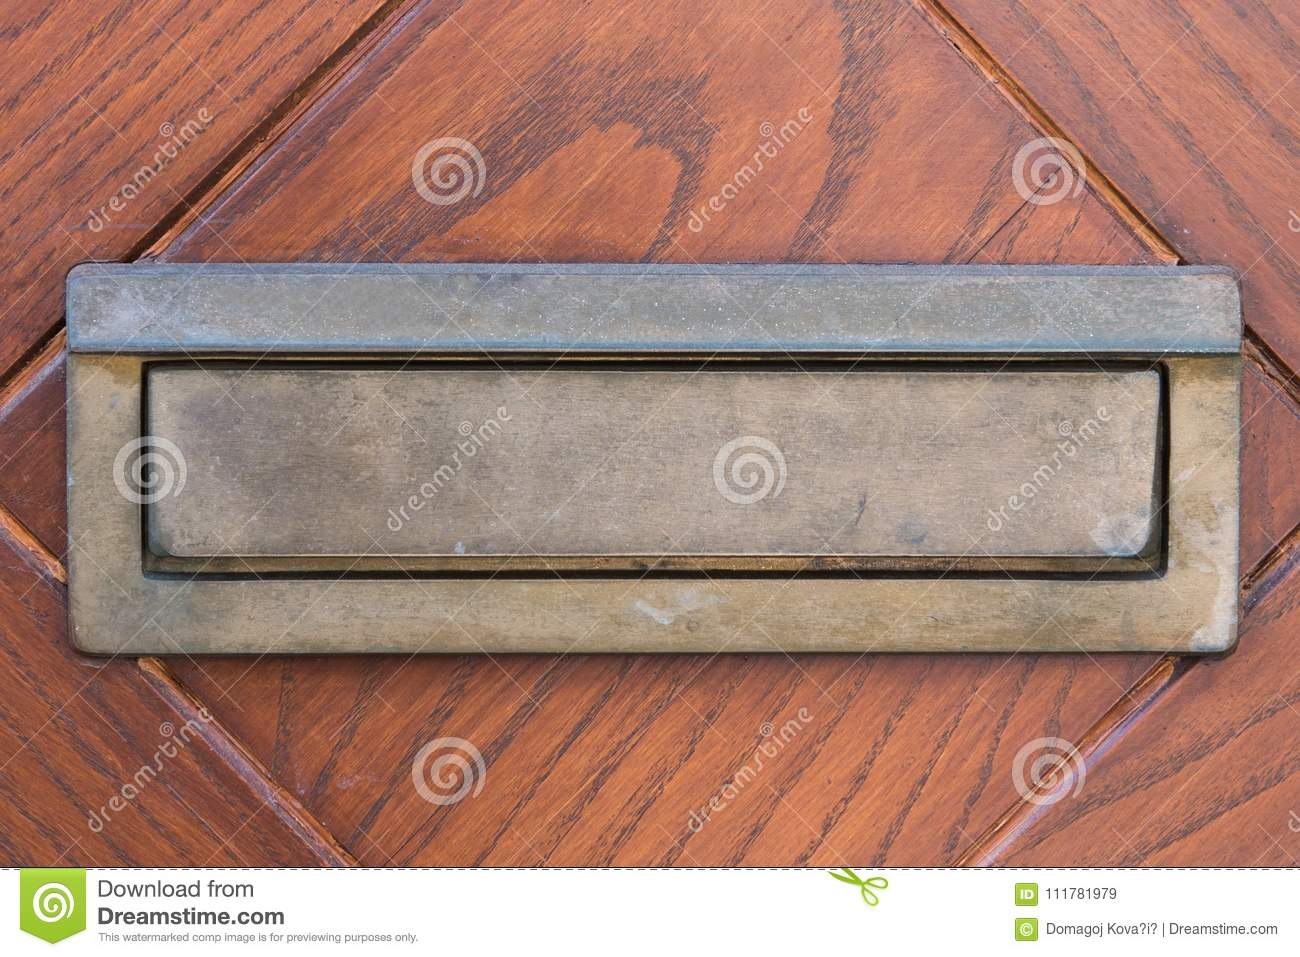 Small silver door mailbox on wooden doors. Small letterbox